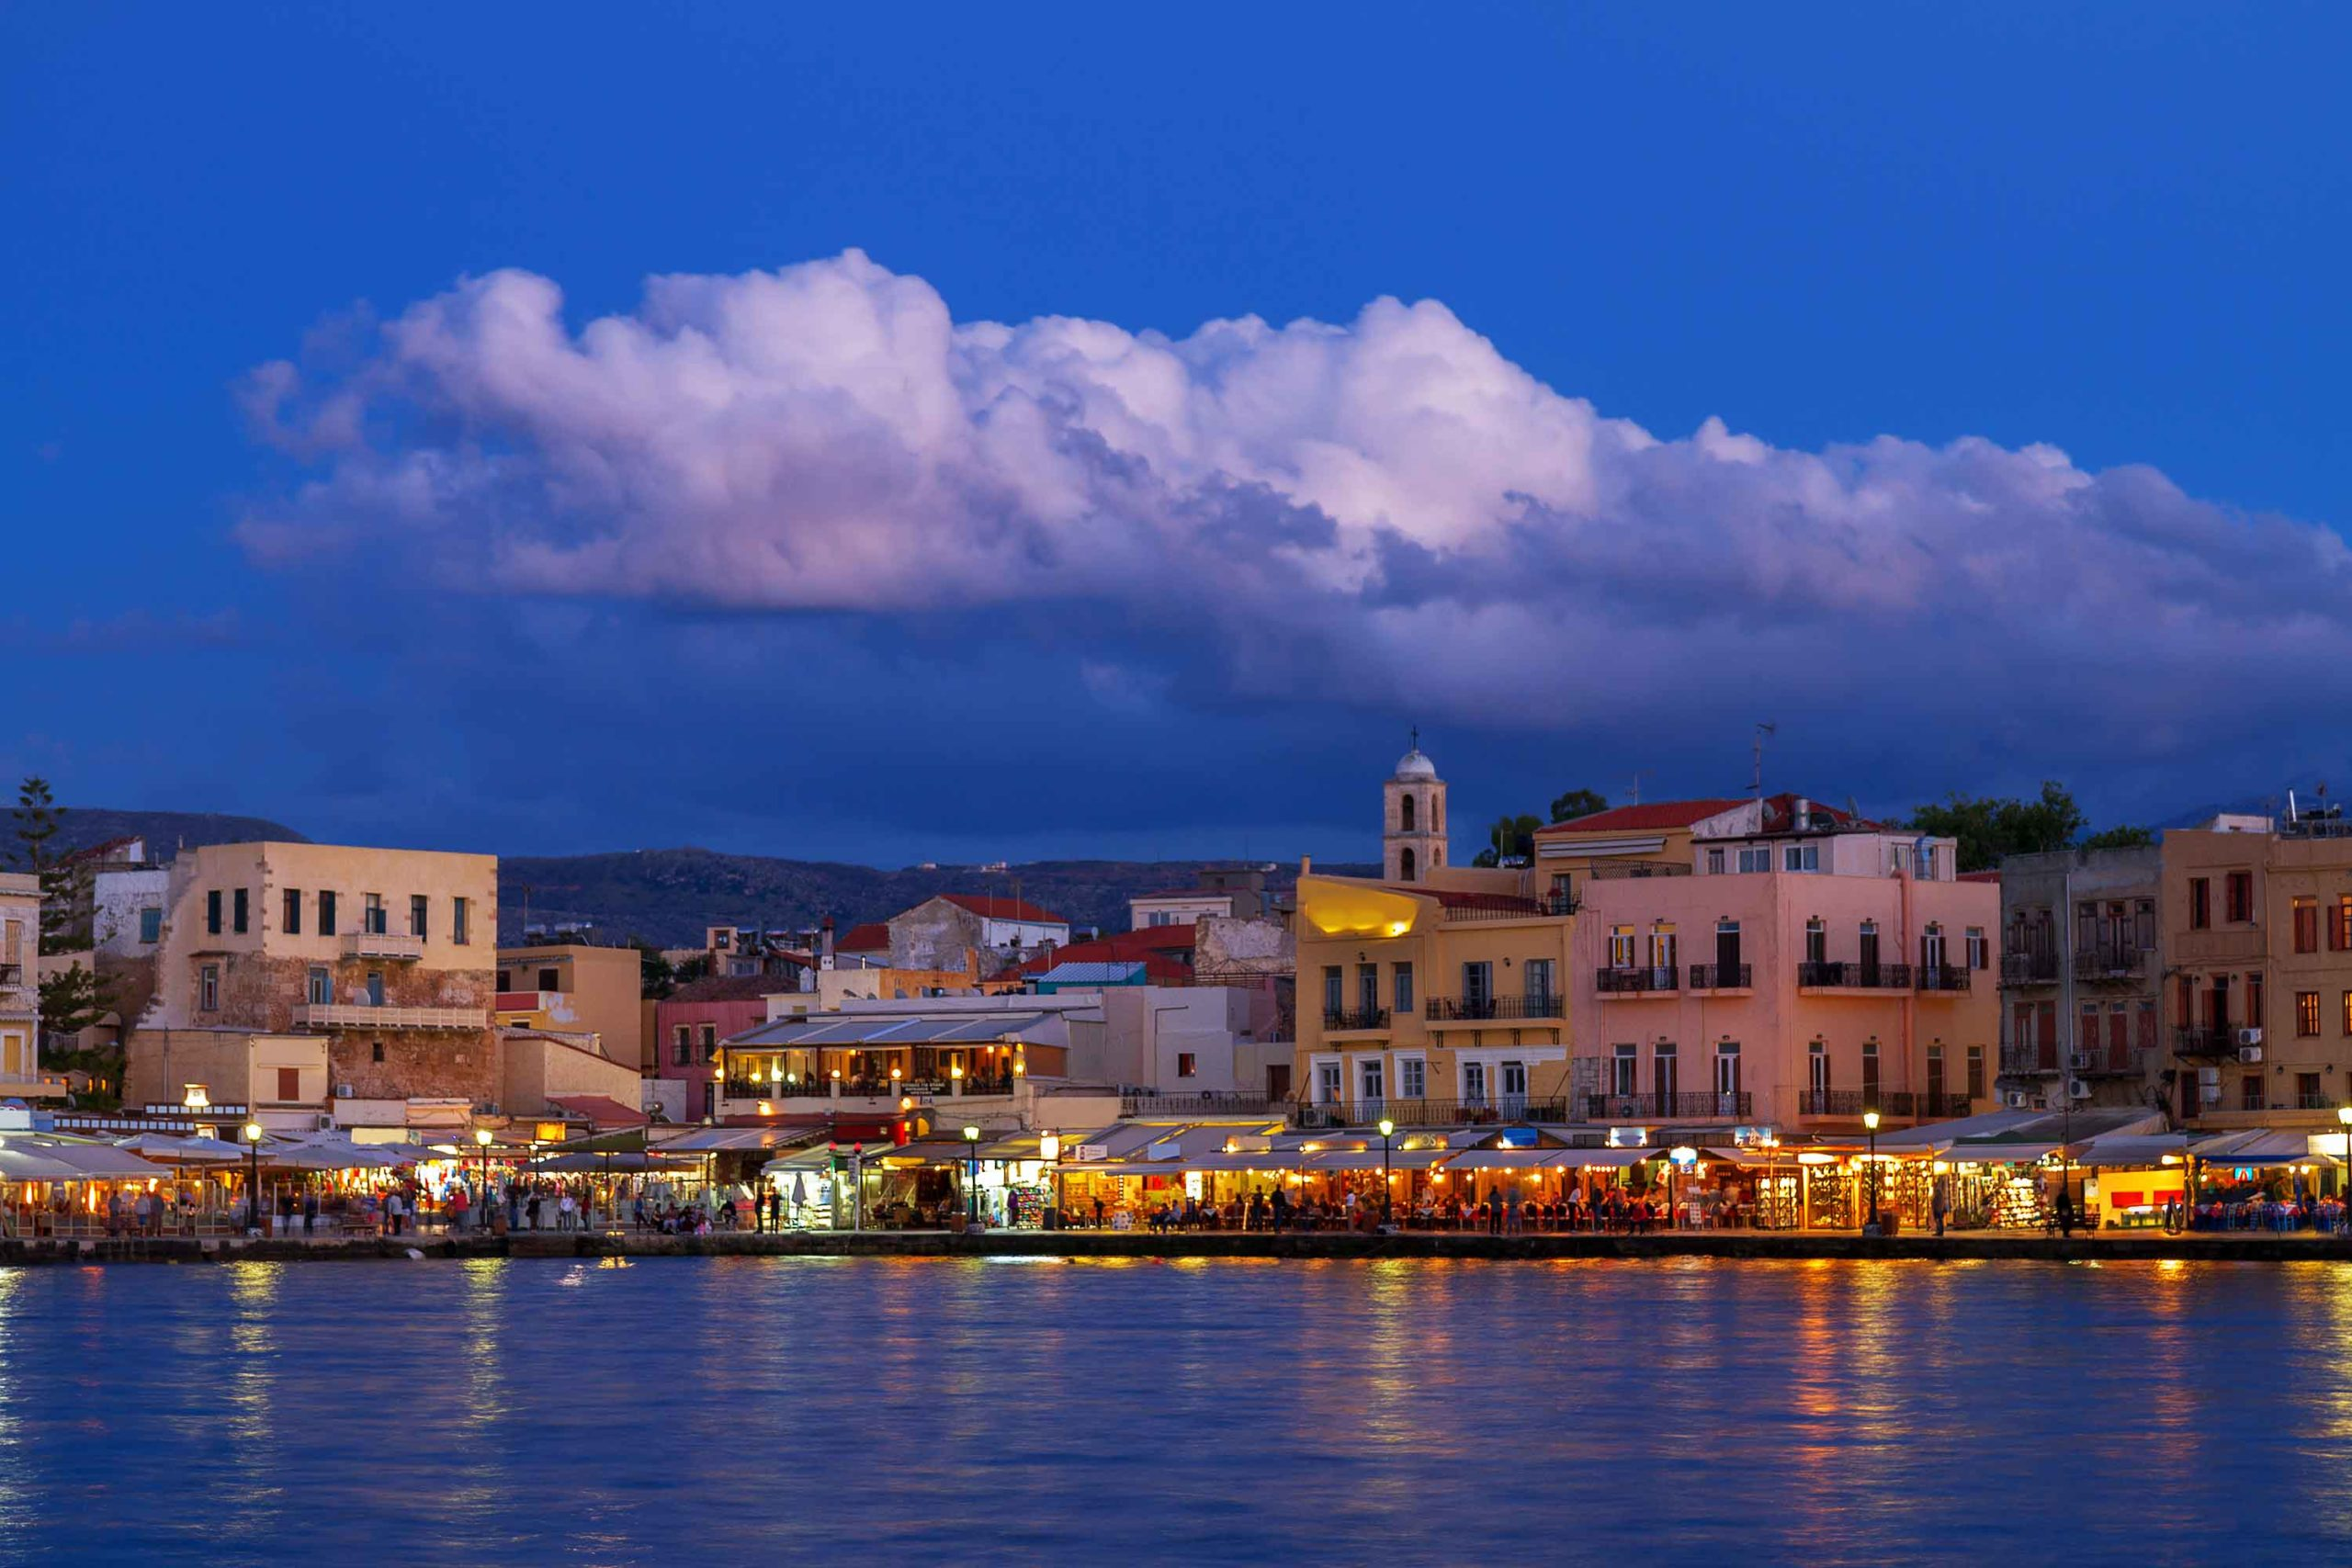 Canva---Venetian-Habour-of-Chania,-Crete,-Greece